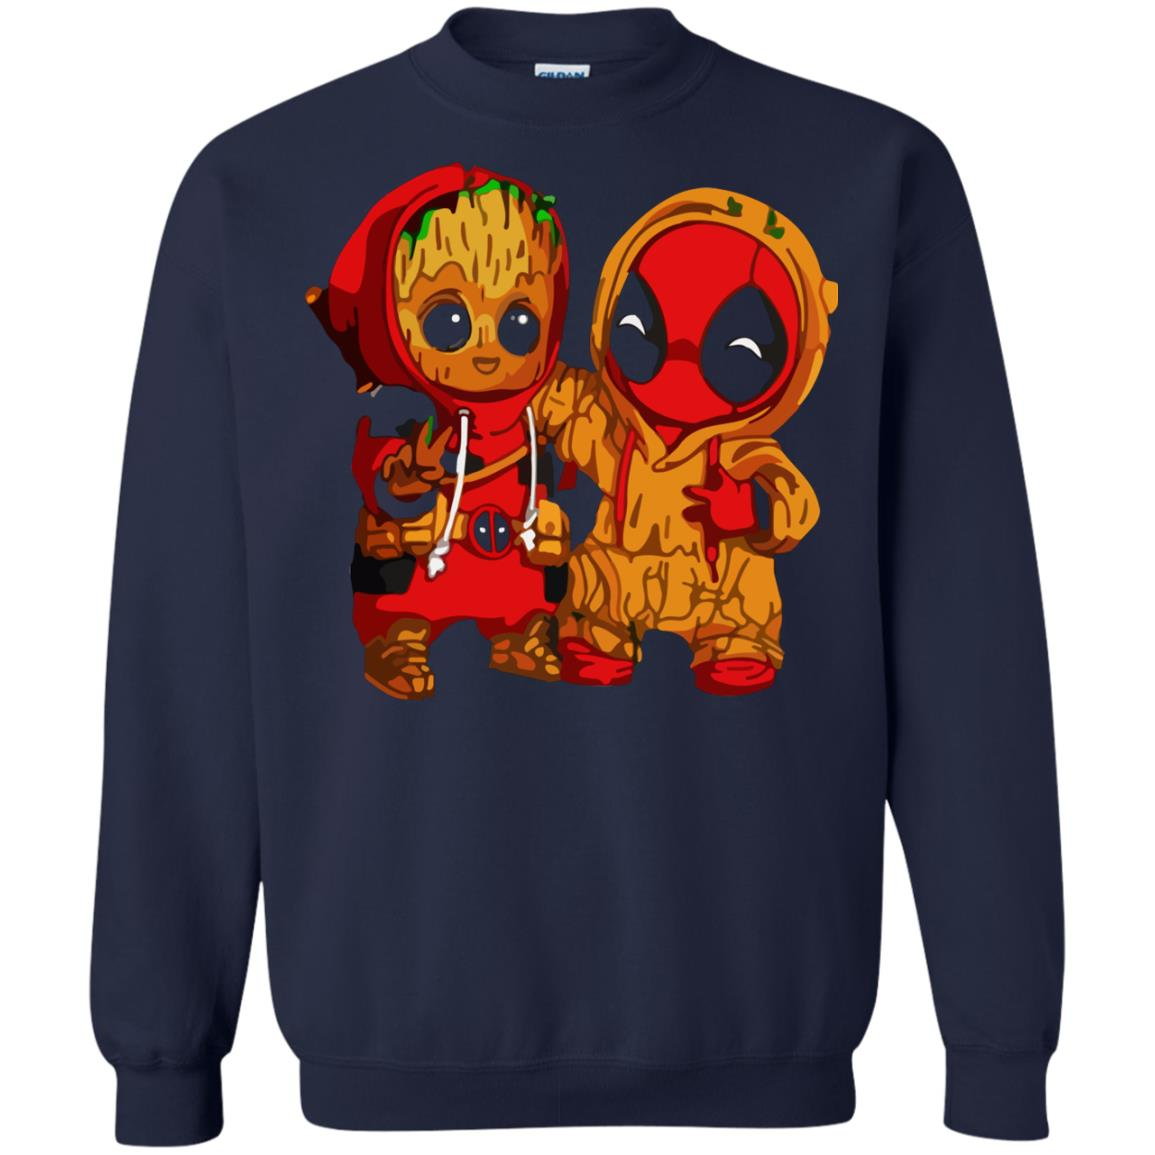 image 438 - Baby Groot And Deadpool Sweatshirt, Hoodie